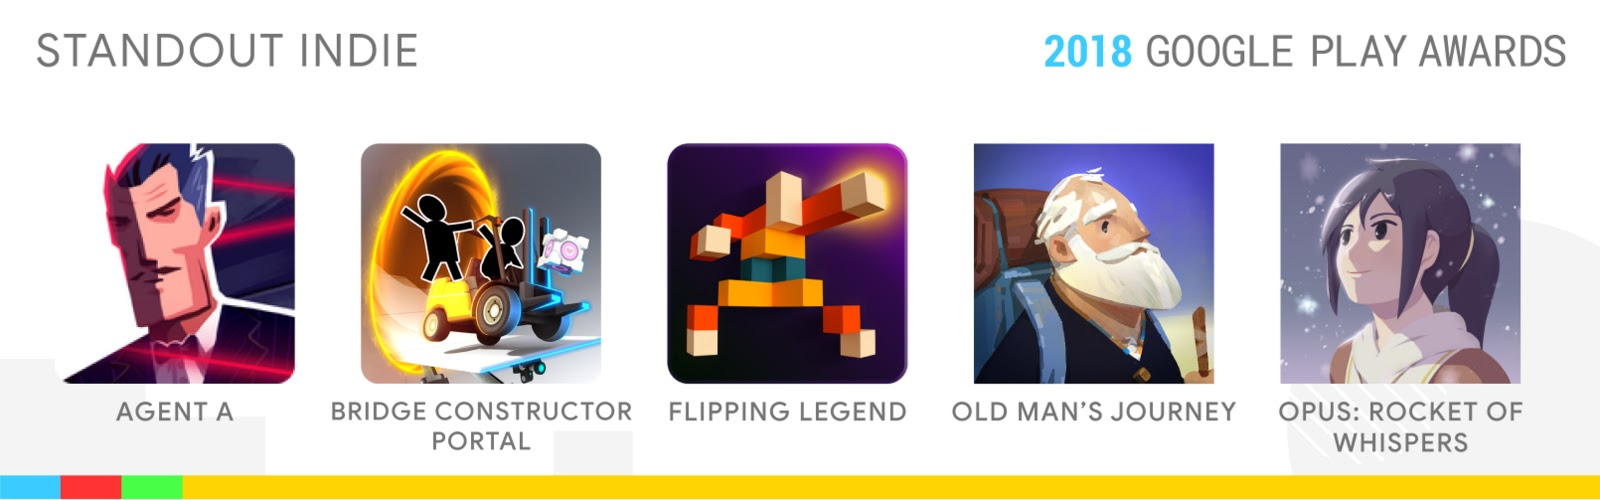 Standout Indie: Agent A, Bridge Constructor Portal, Flipping Legend, Old Man�s Journey, OPUS: Rocket of Whispers